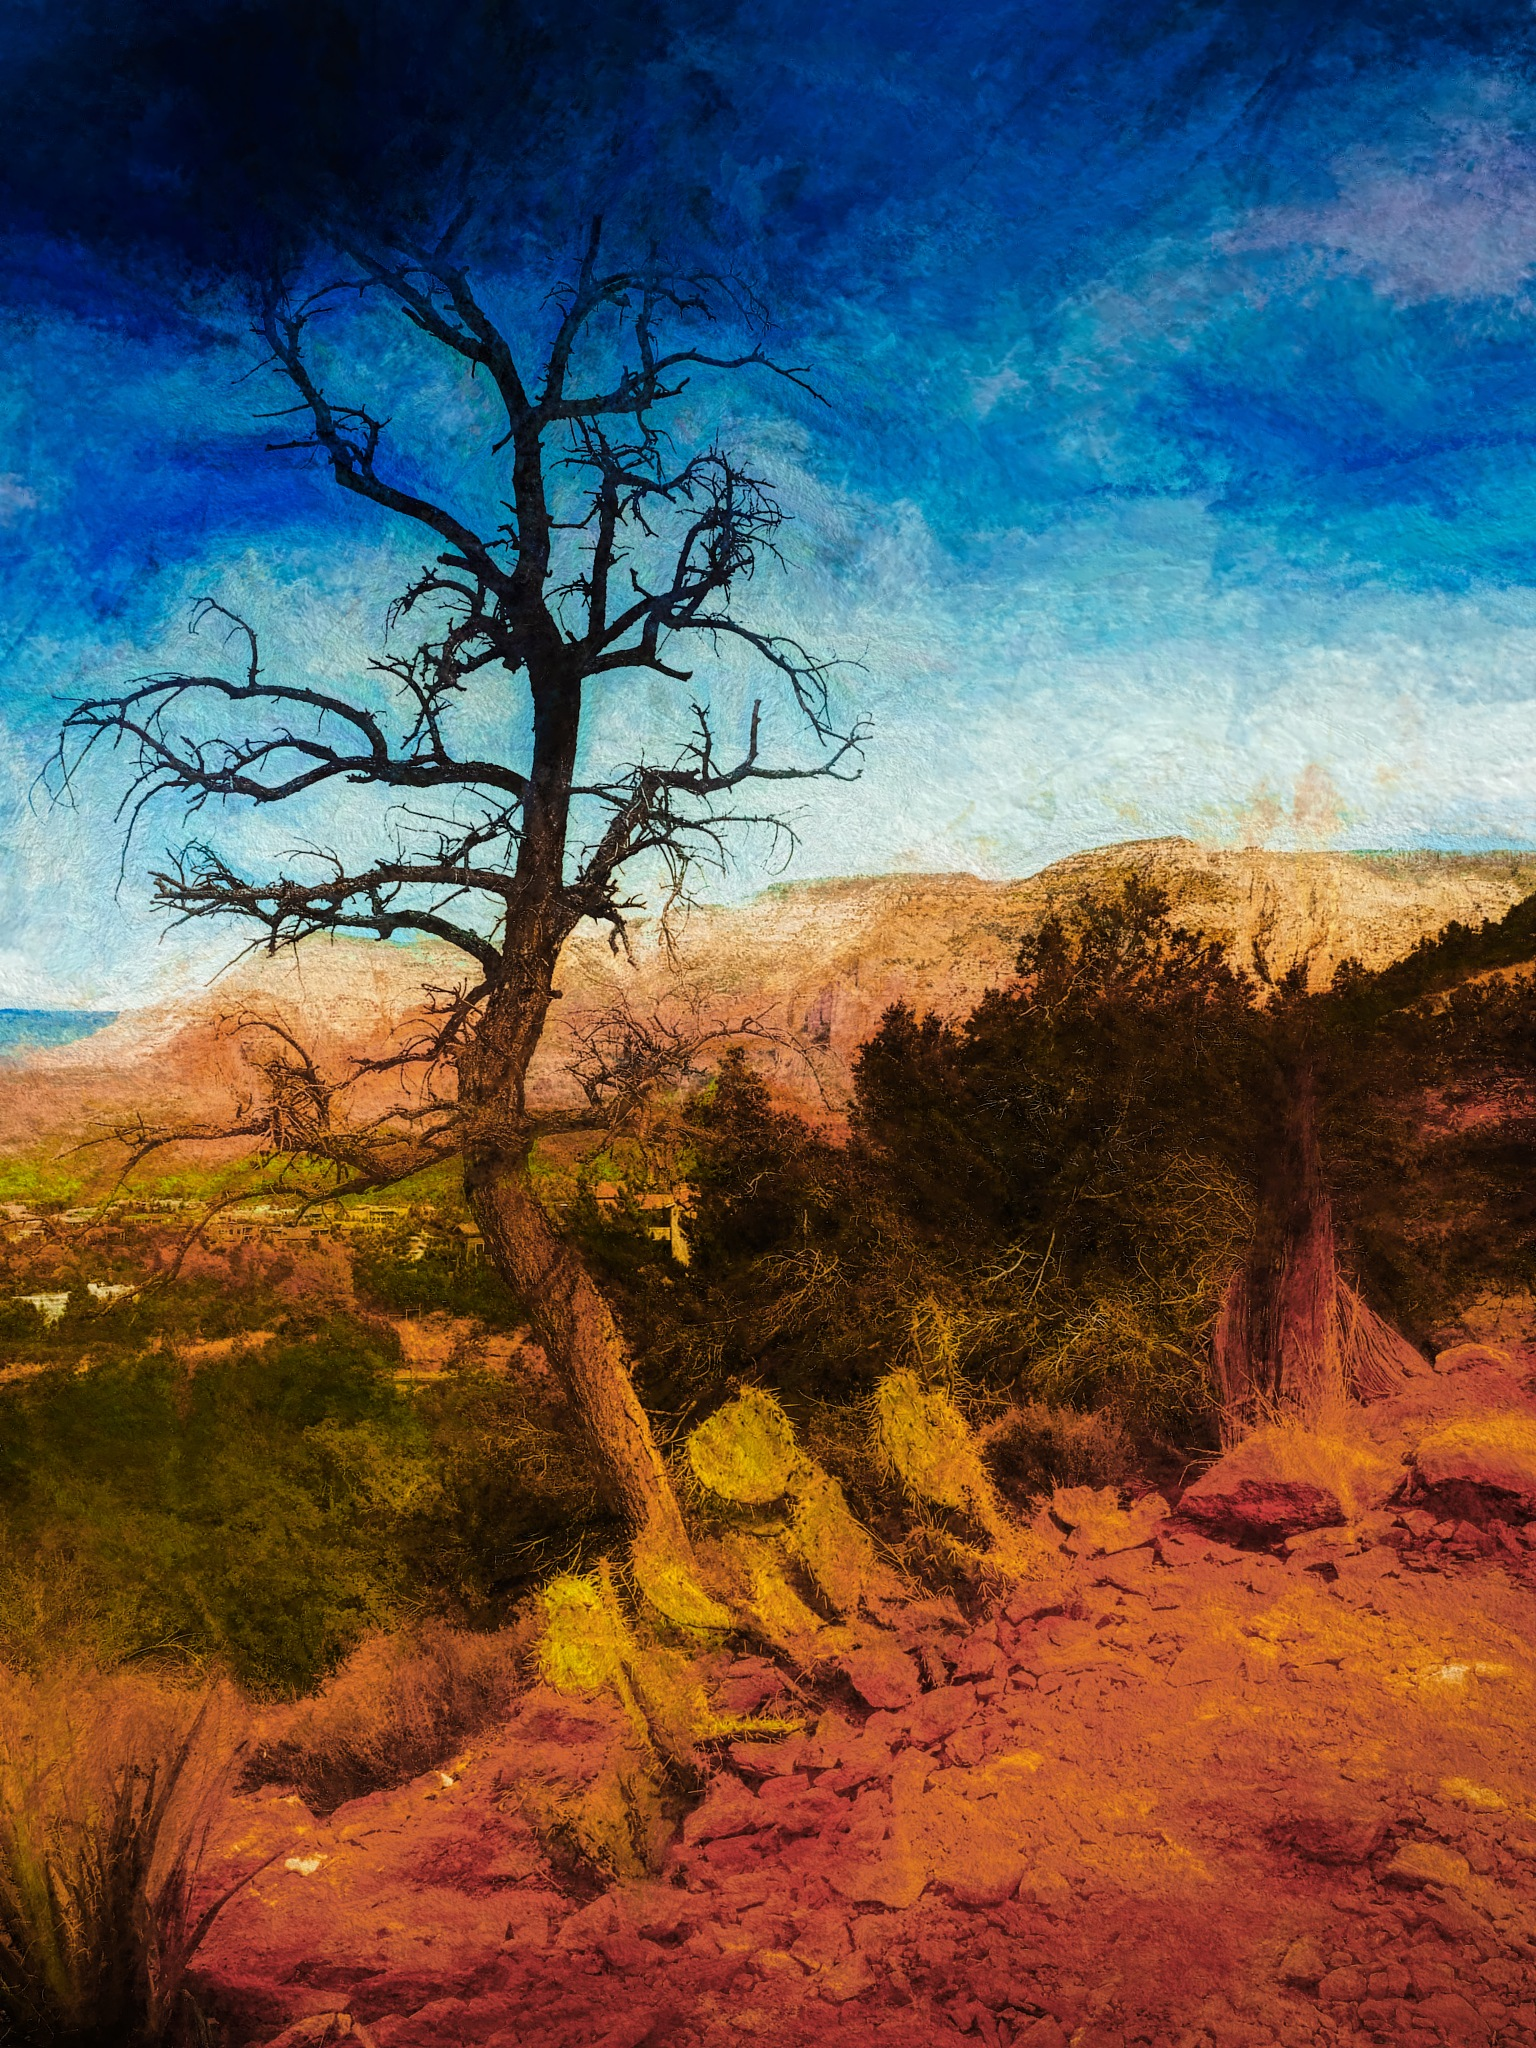 Sedona, Arizona Colored Chalk Drawing by David Walters